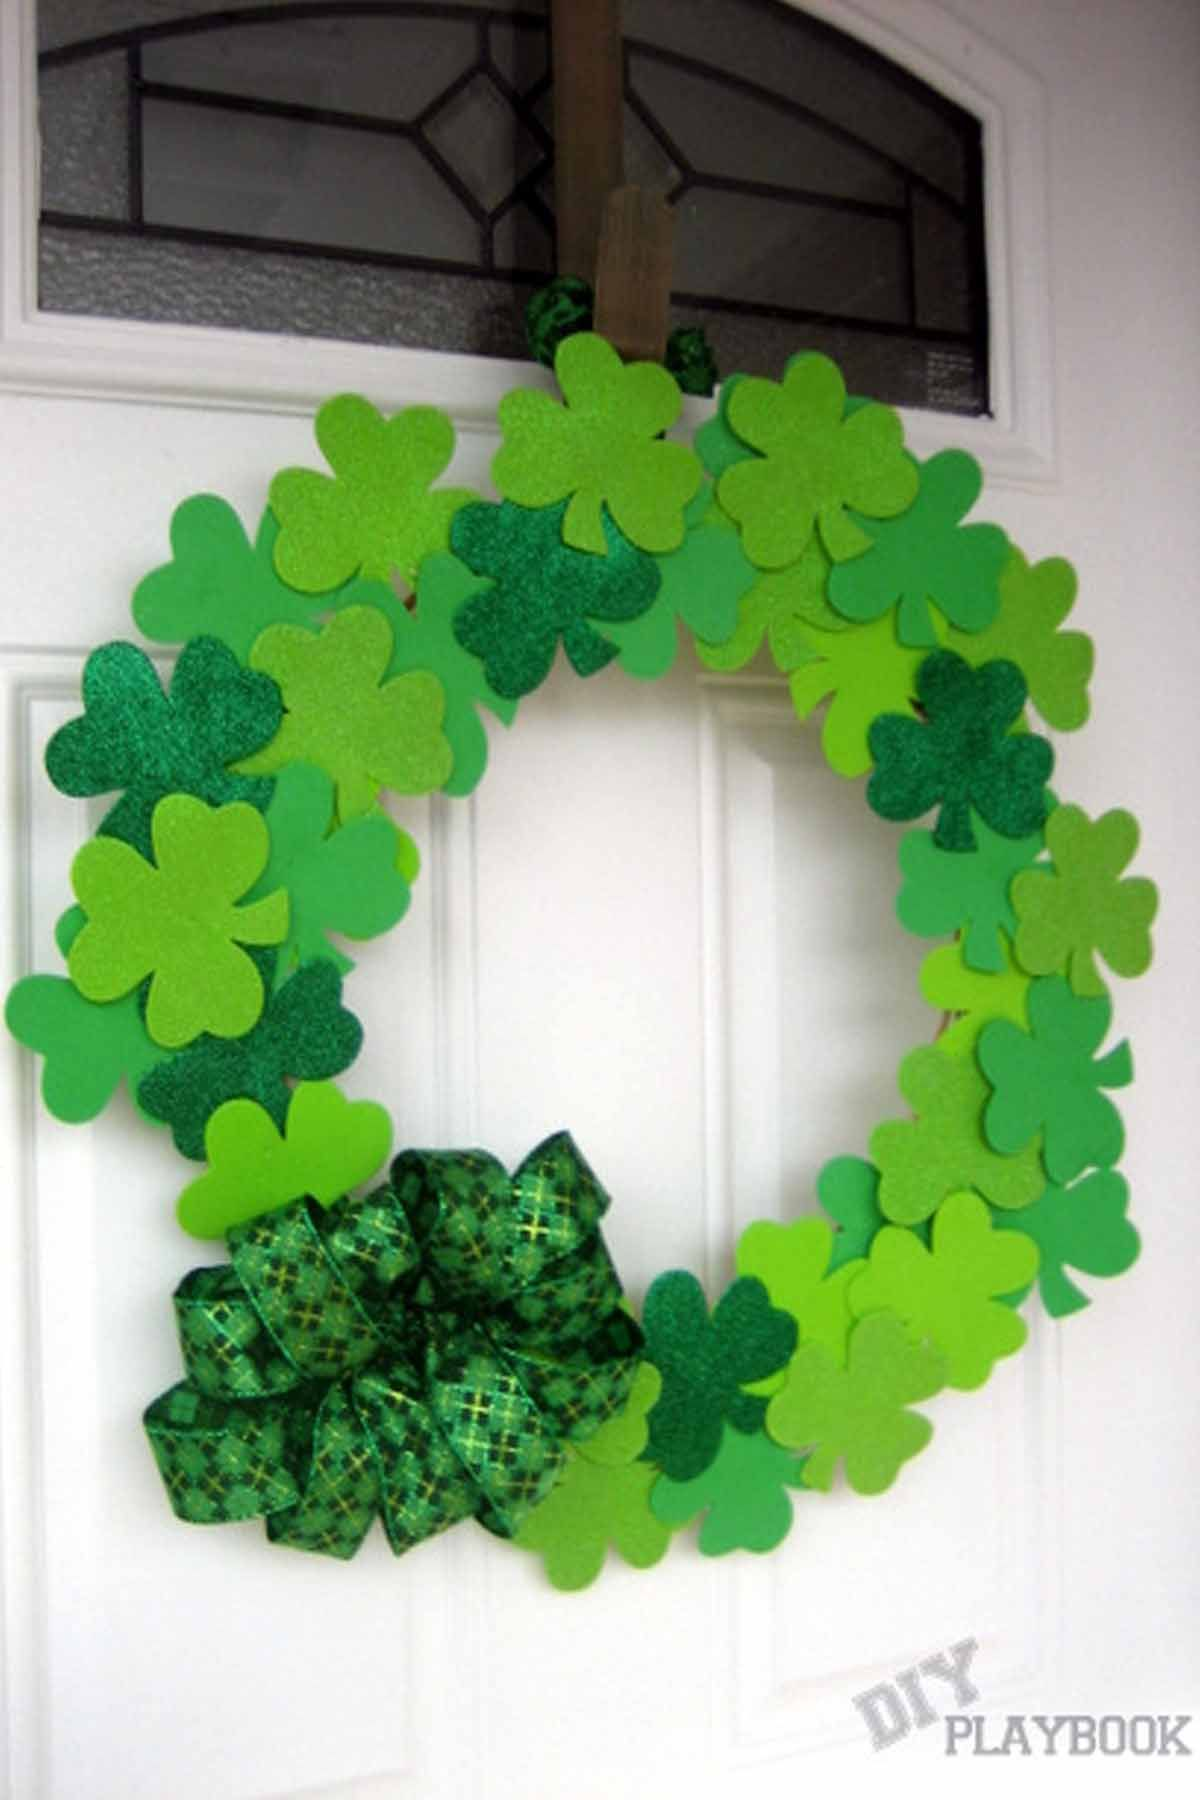 28 St. Patrick\'s Day Crafts for Kids - DIY Project Ideas for St ...